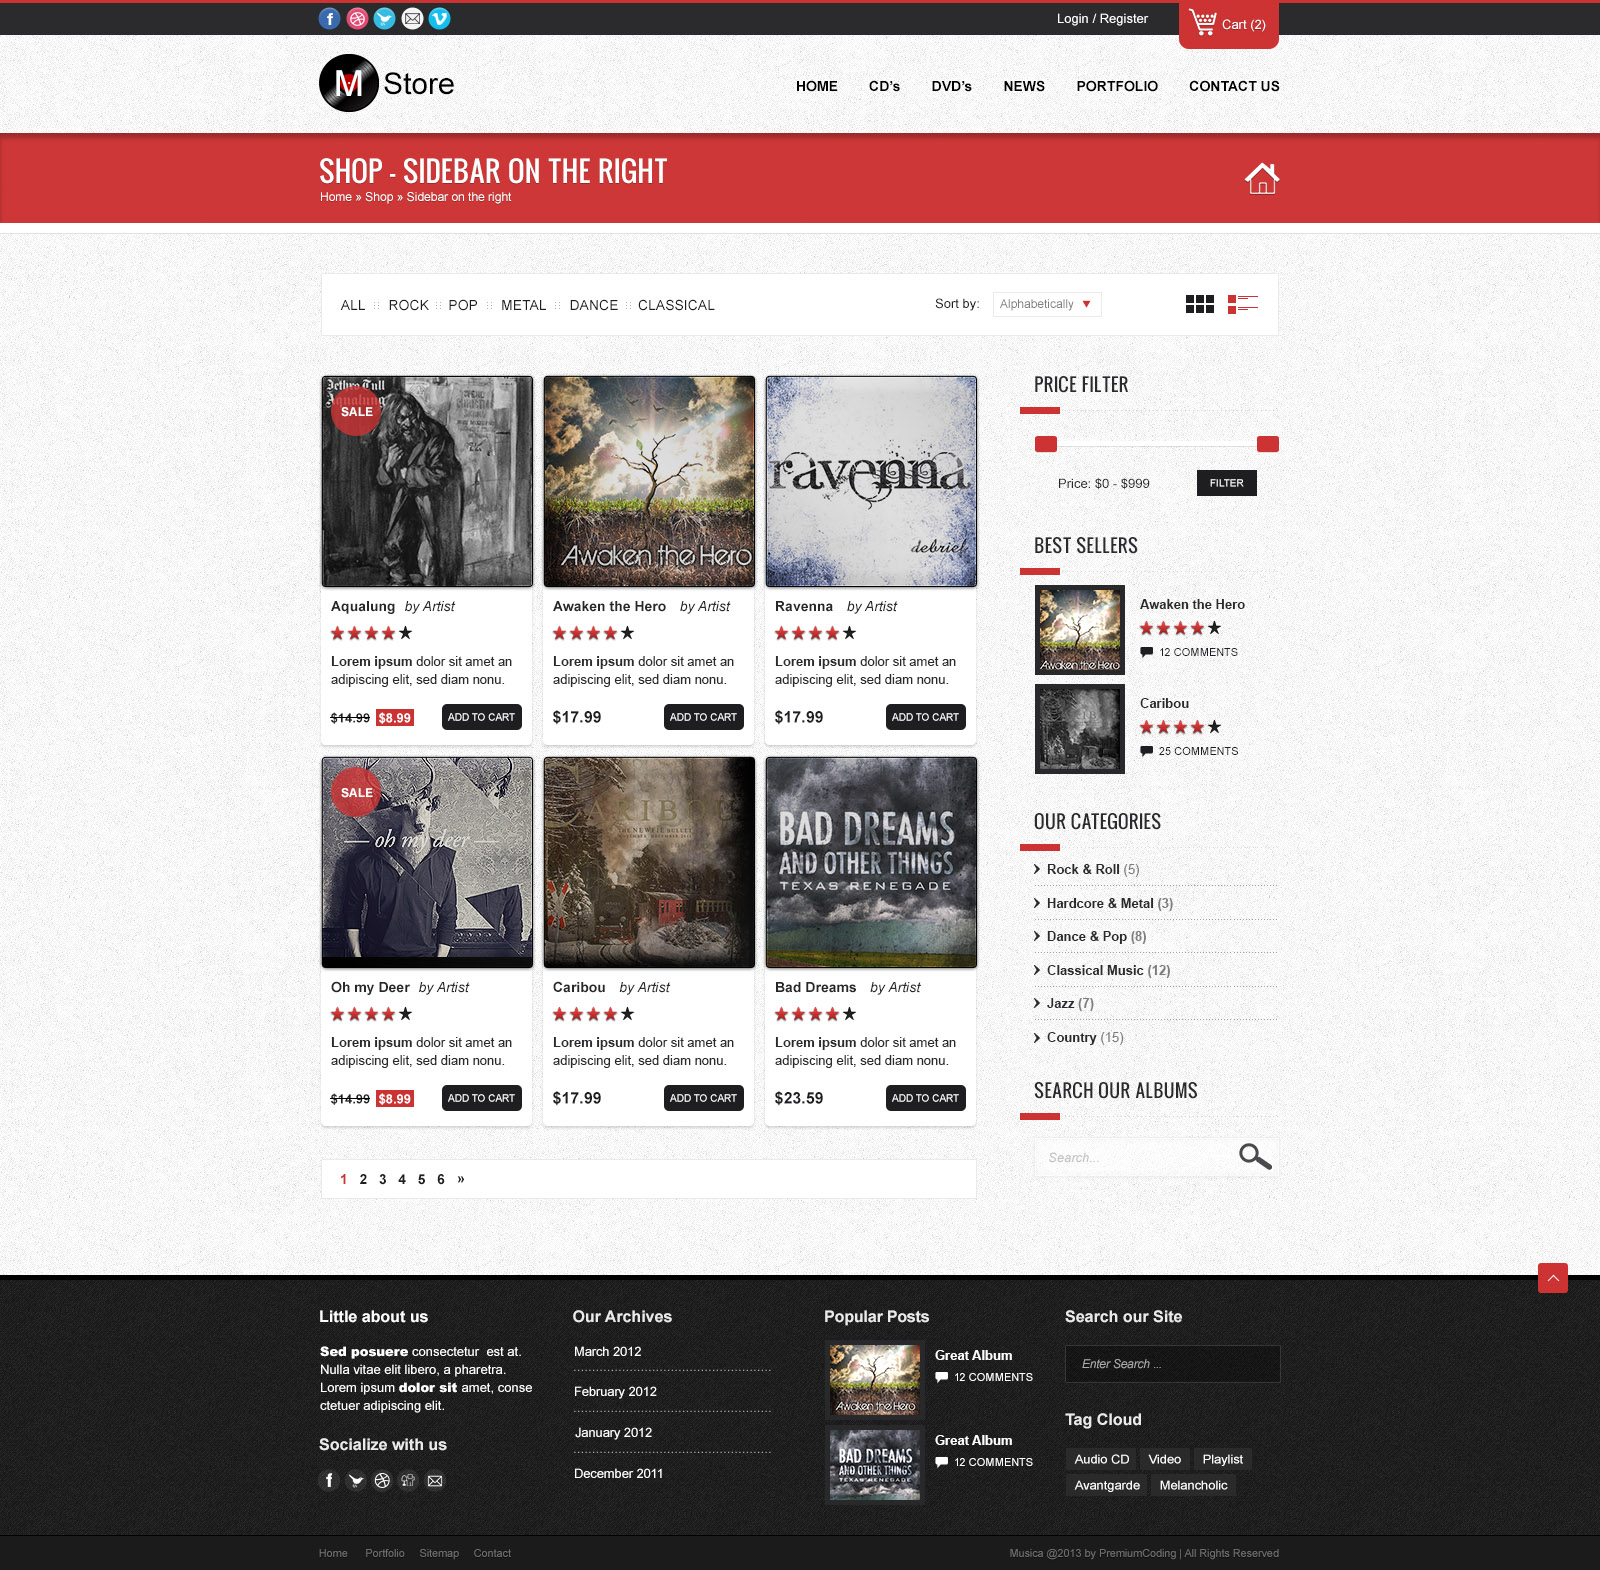 Shop Website Template (PSD) - Shop with Sidebar